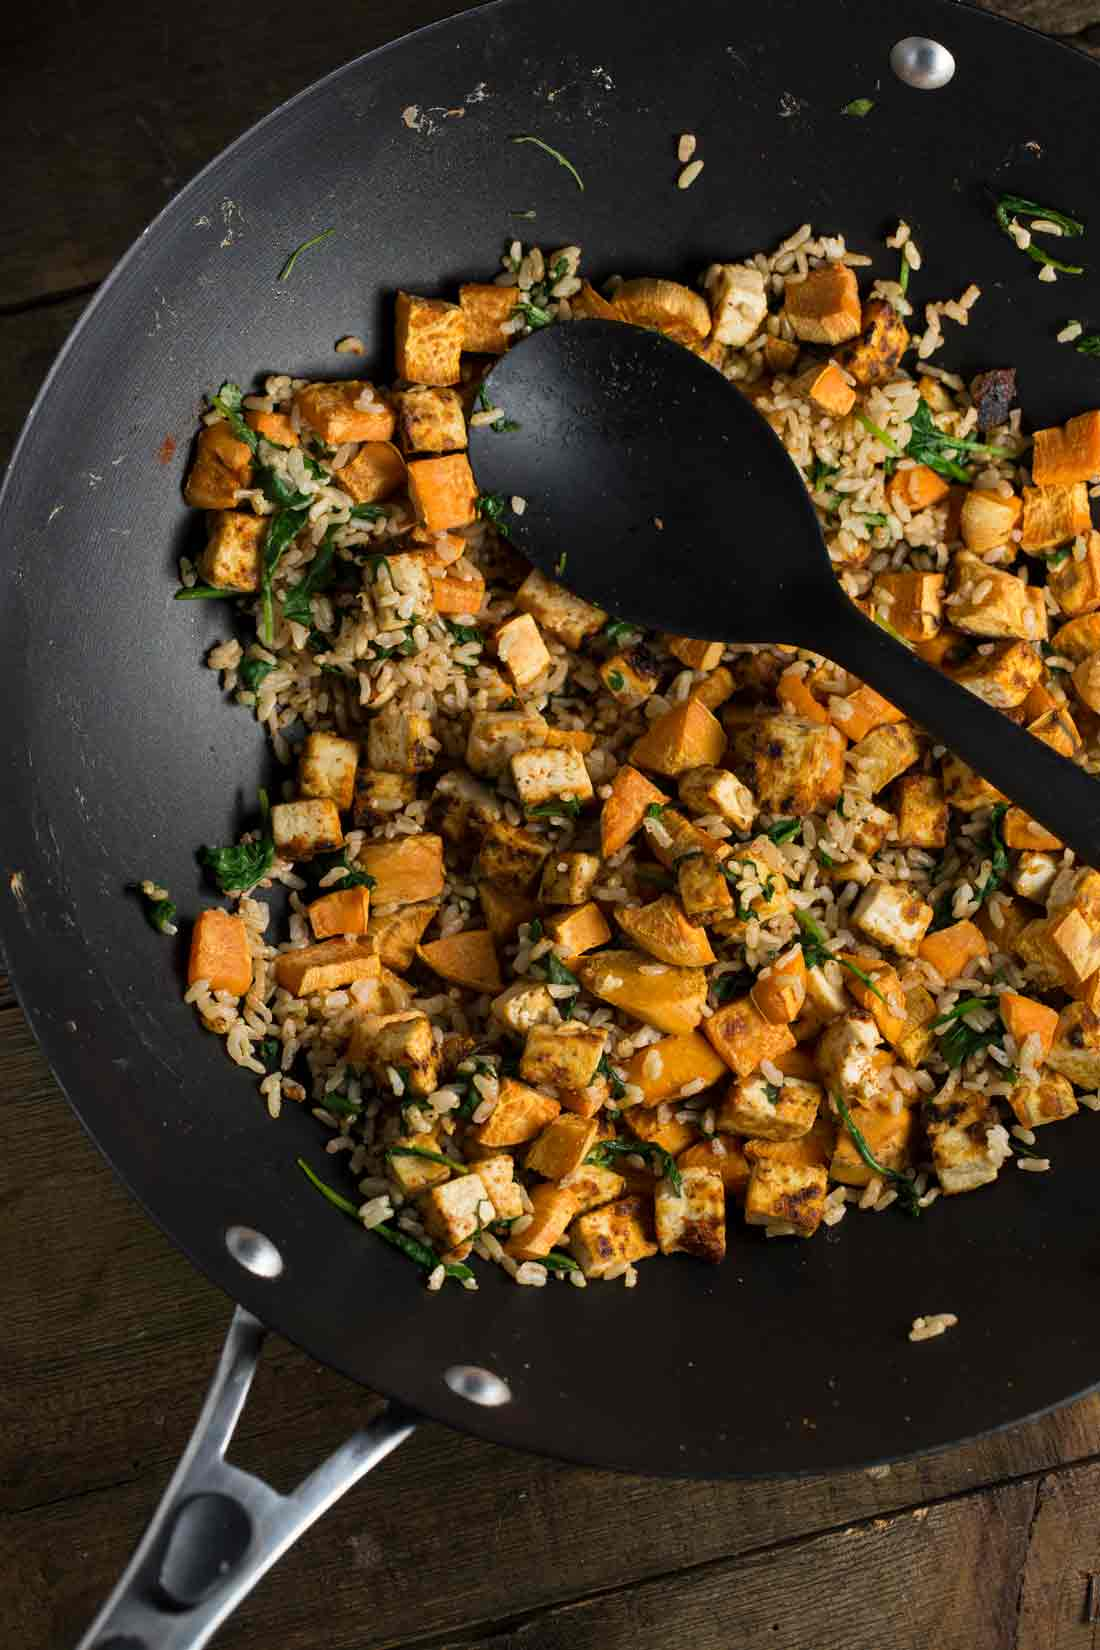 Overhead view of tofu, stir fried with rice, spinach and sweet potatoes.